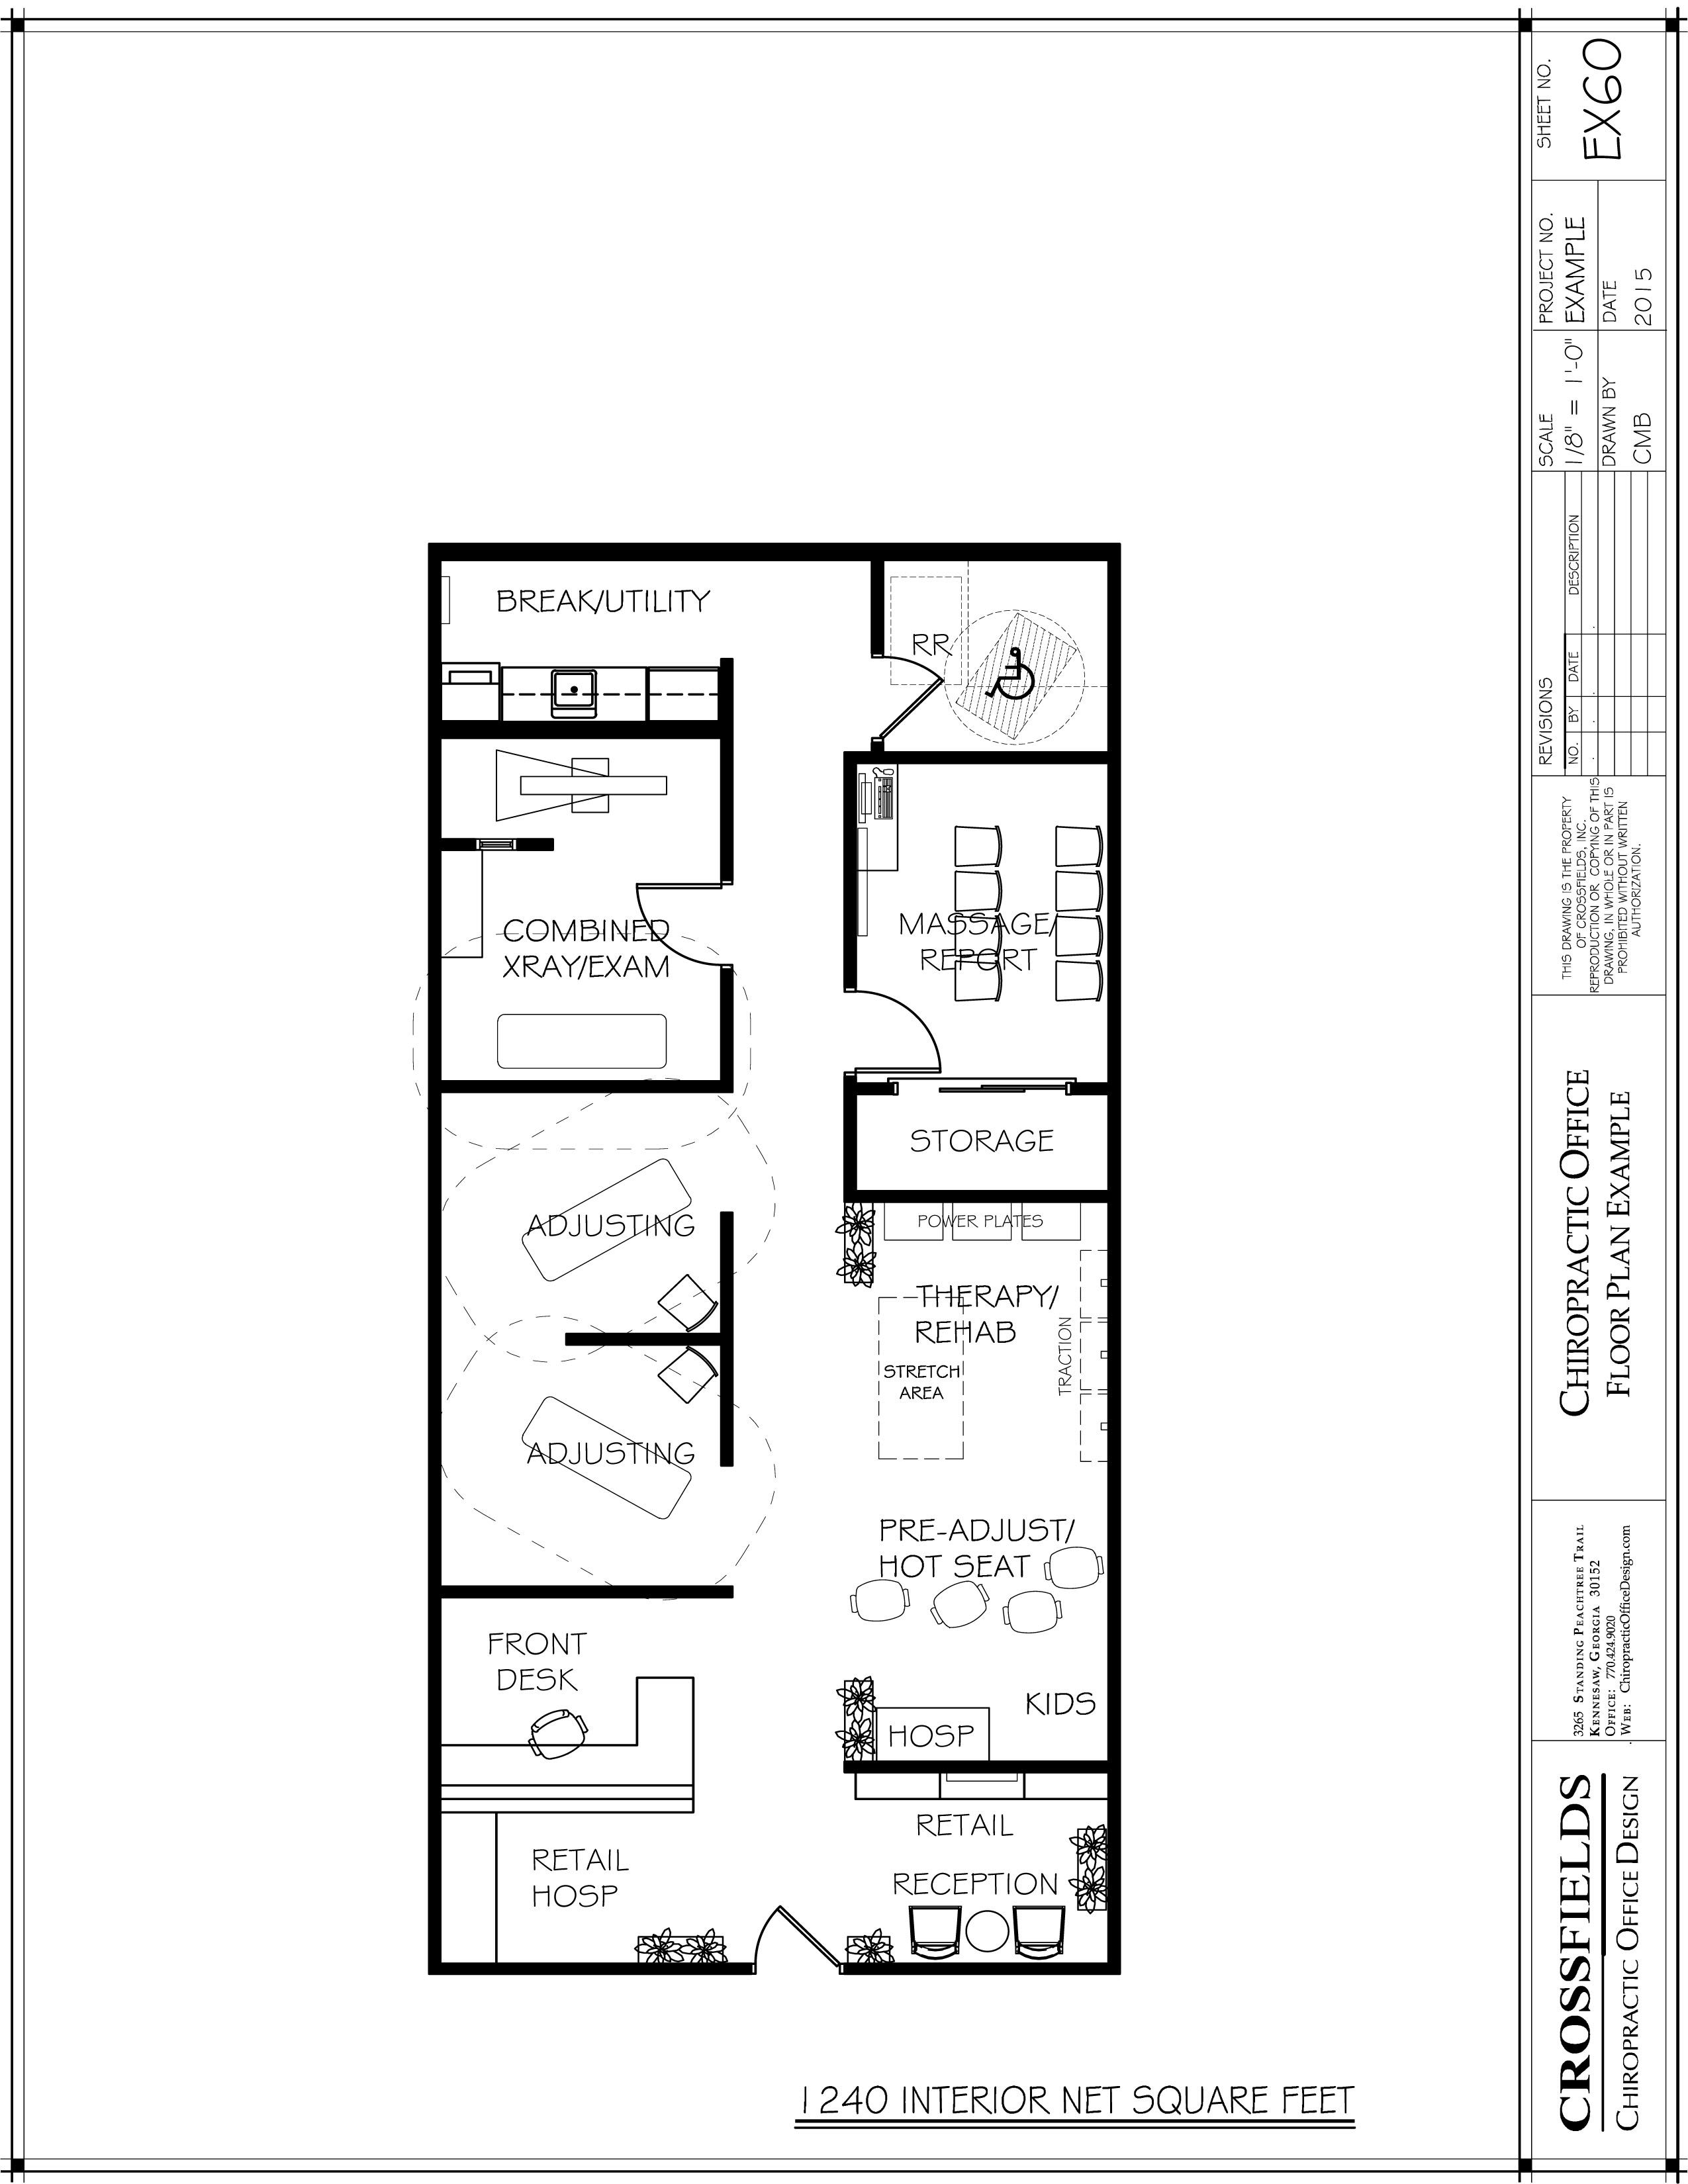 Sample Plan with Open Therapy Rooms and Semi-Open